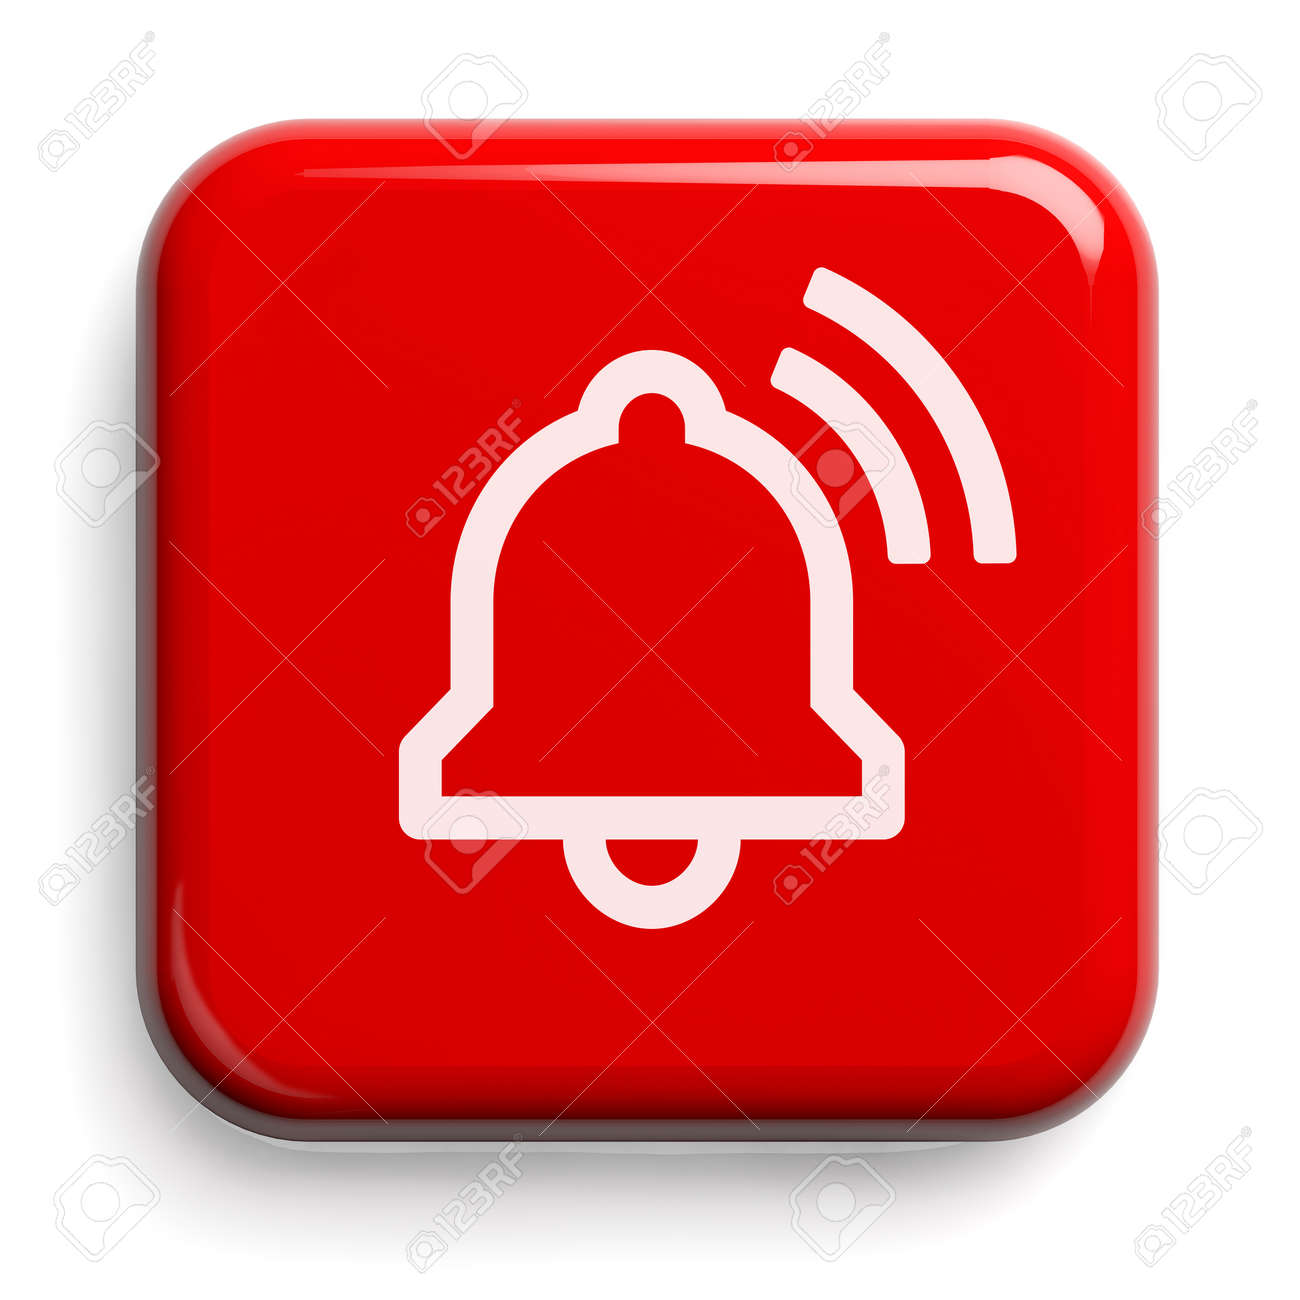 Red Alarm Bell Button Isolated on White. Clipping path included. 3D illustration. - 147353761